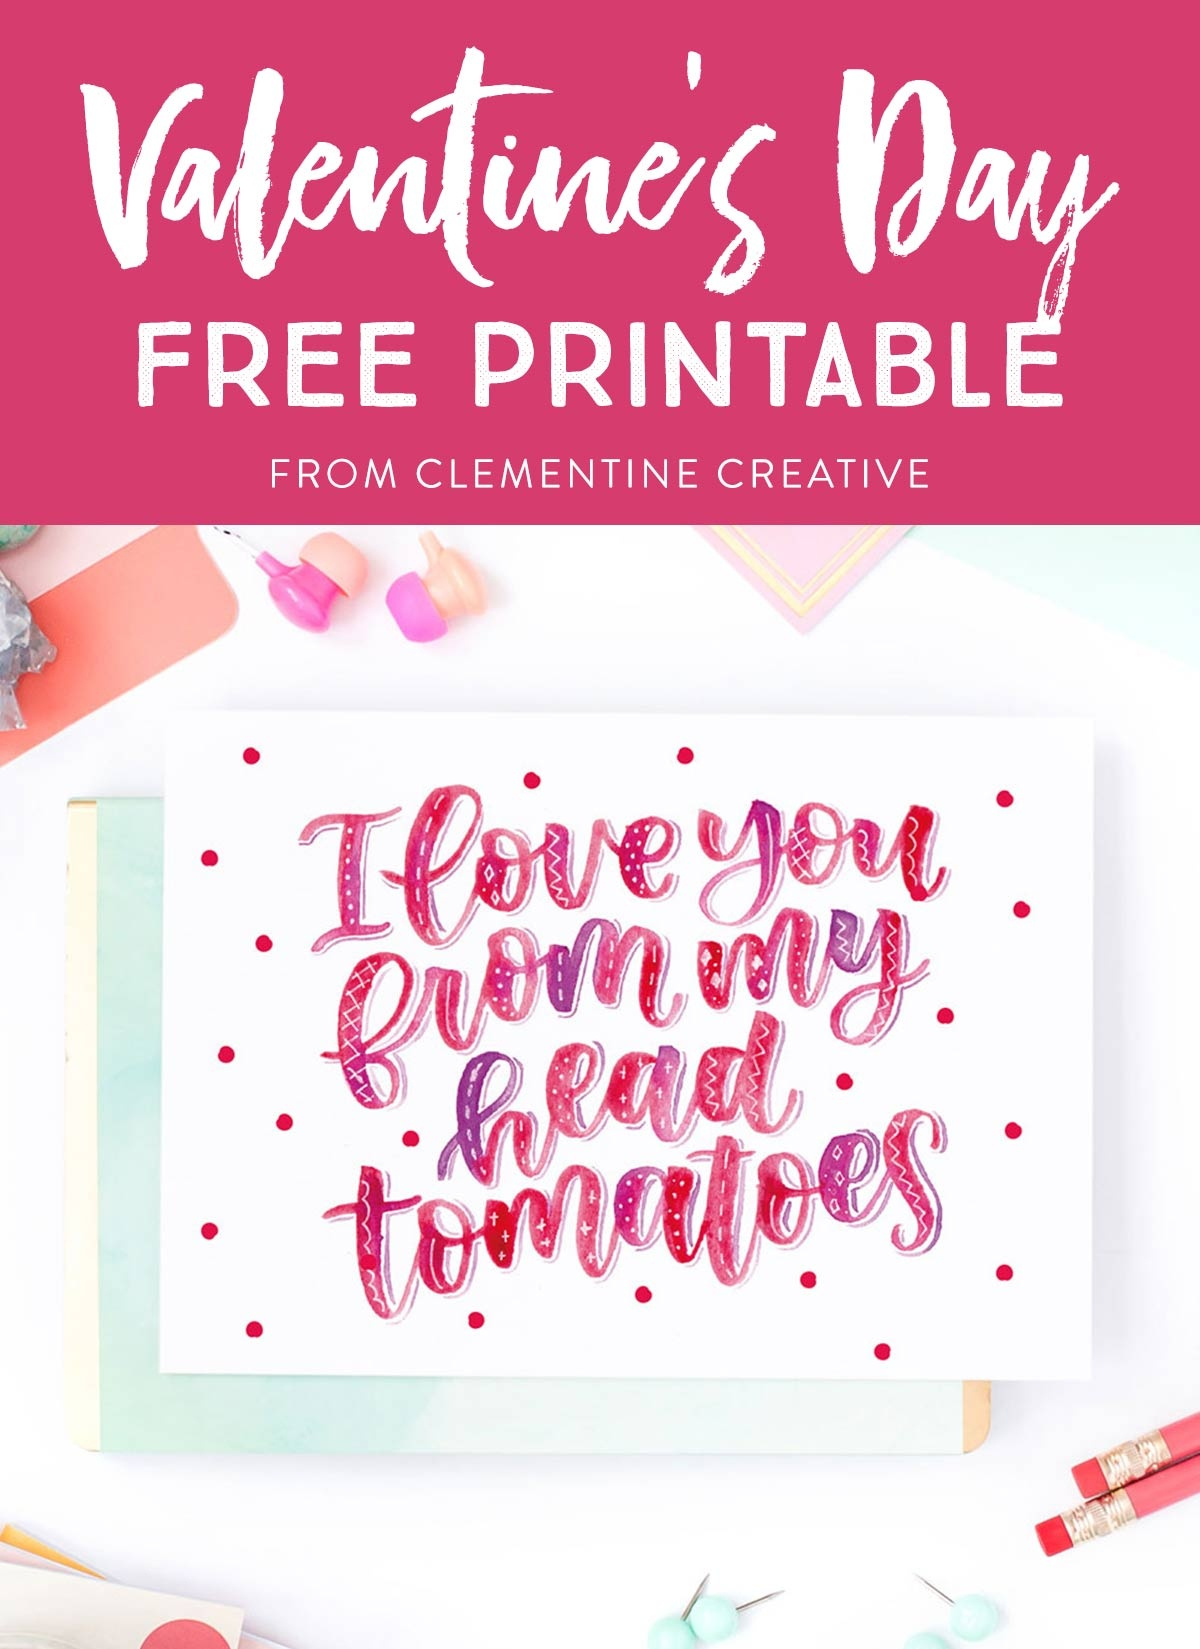 Free Printable Hand Lettered Valentine's Day Card With Punny Message - Free Printable Valentines Day Cards